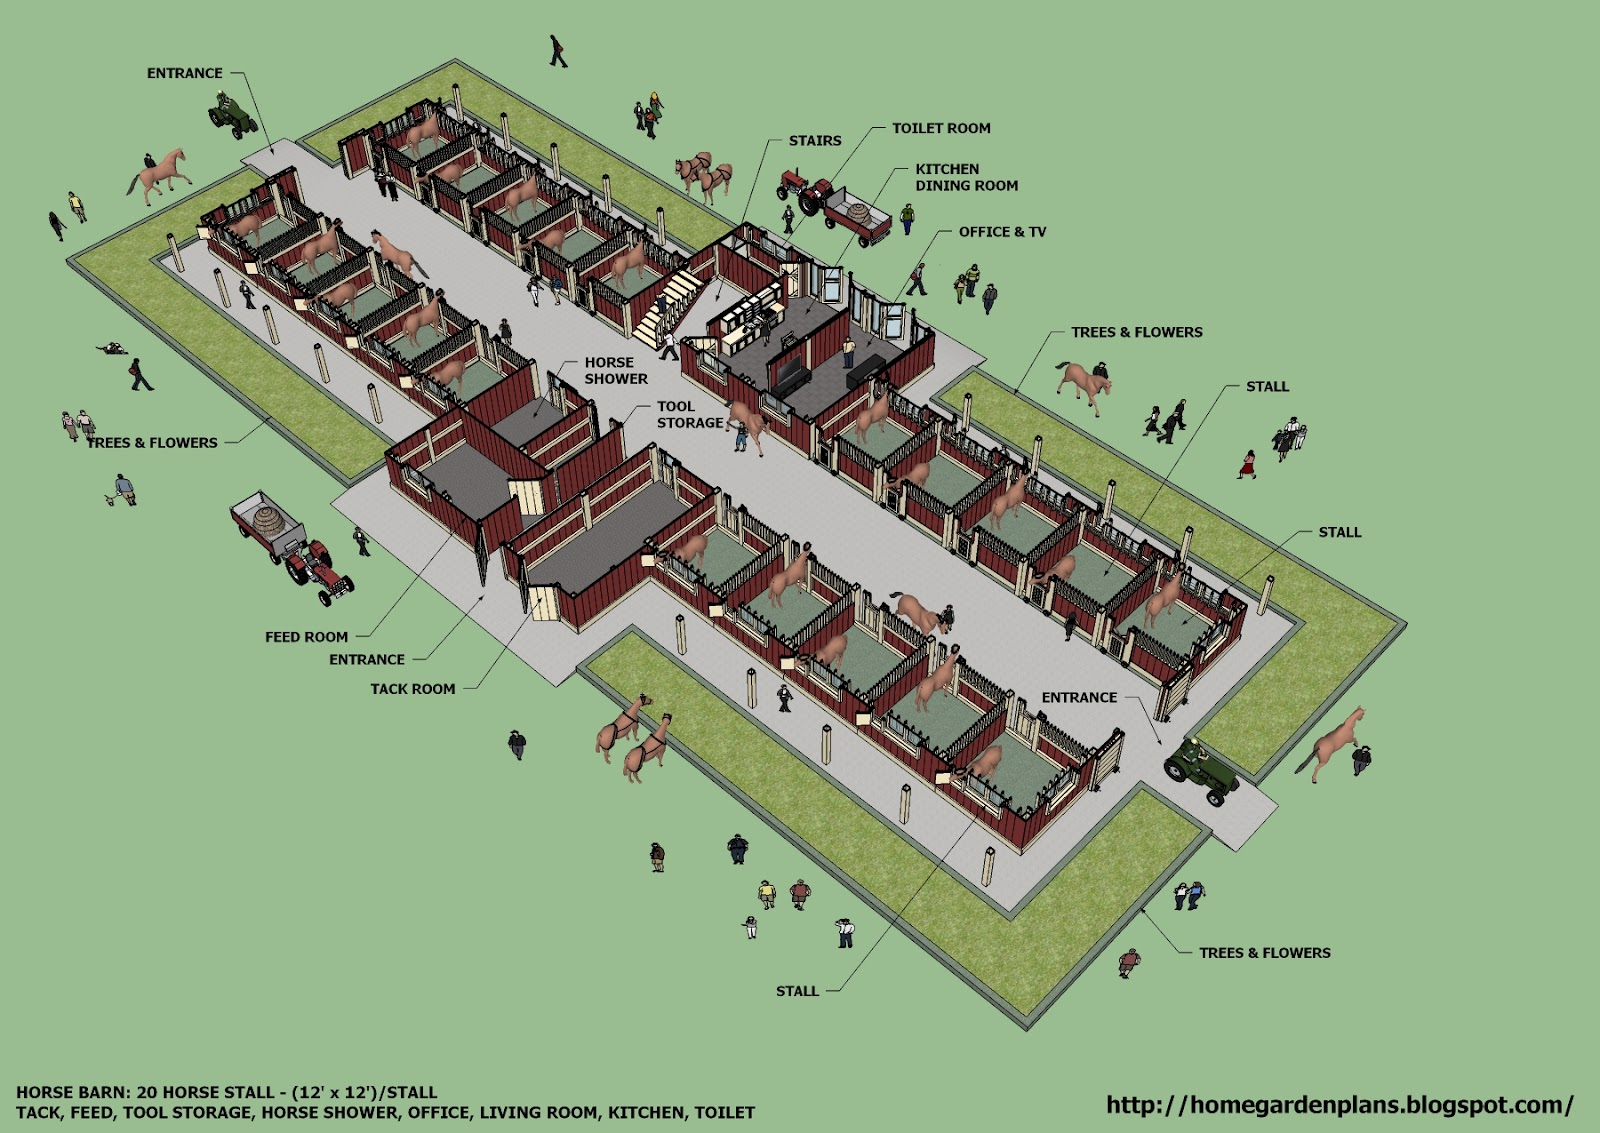 Home garden plans b20h large horse barn for 20 horse for Equestrian barn plans